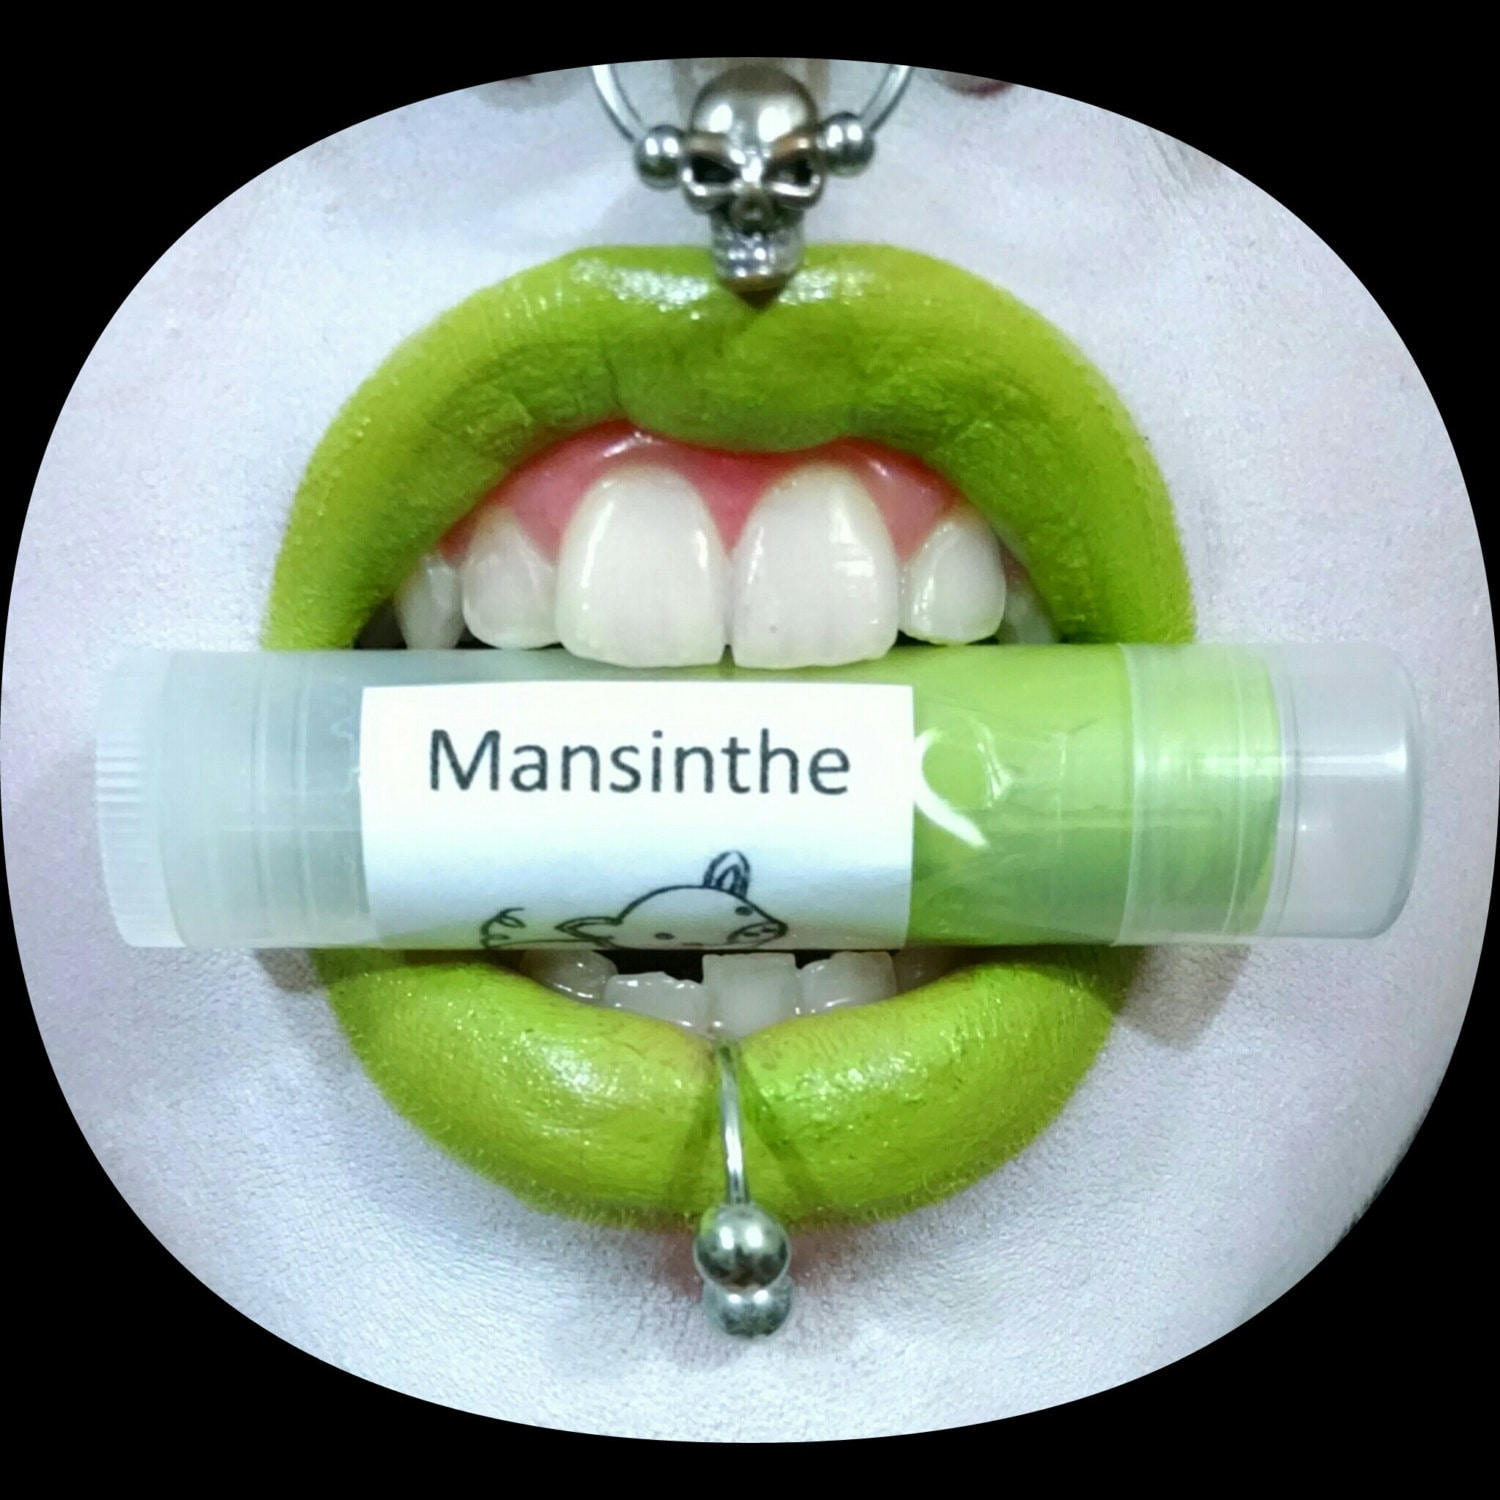 Mansinthe by Drac Makens Bright Yellow Green Lipstick